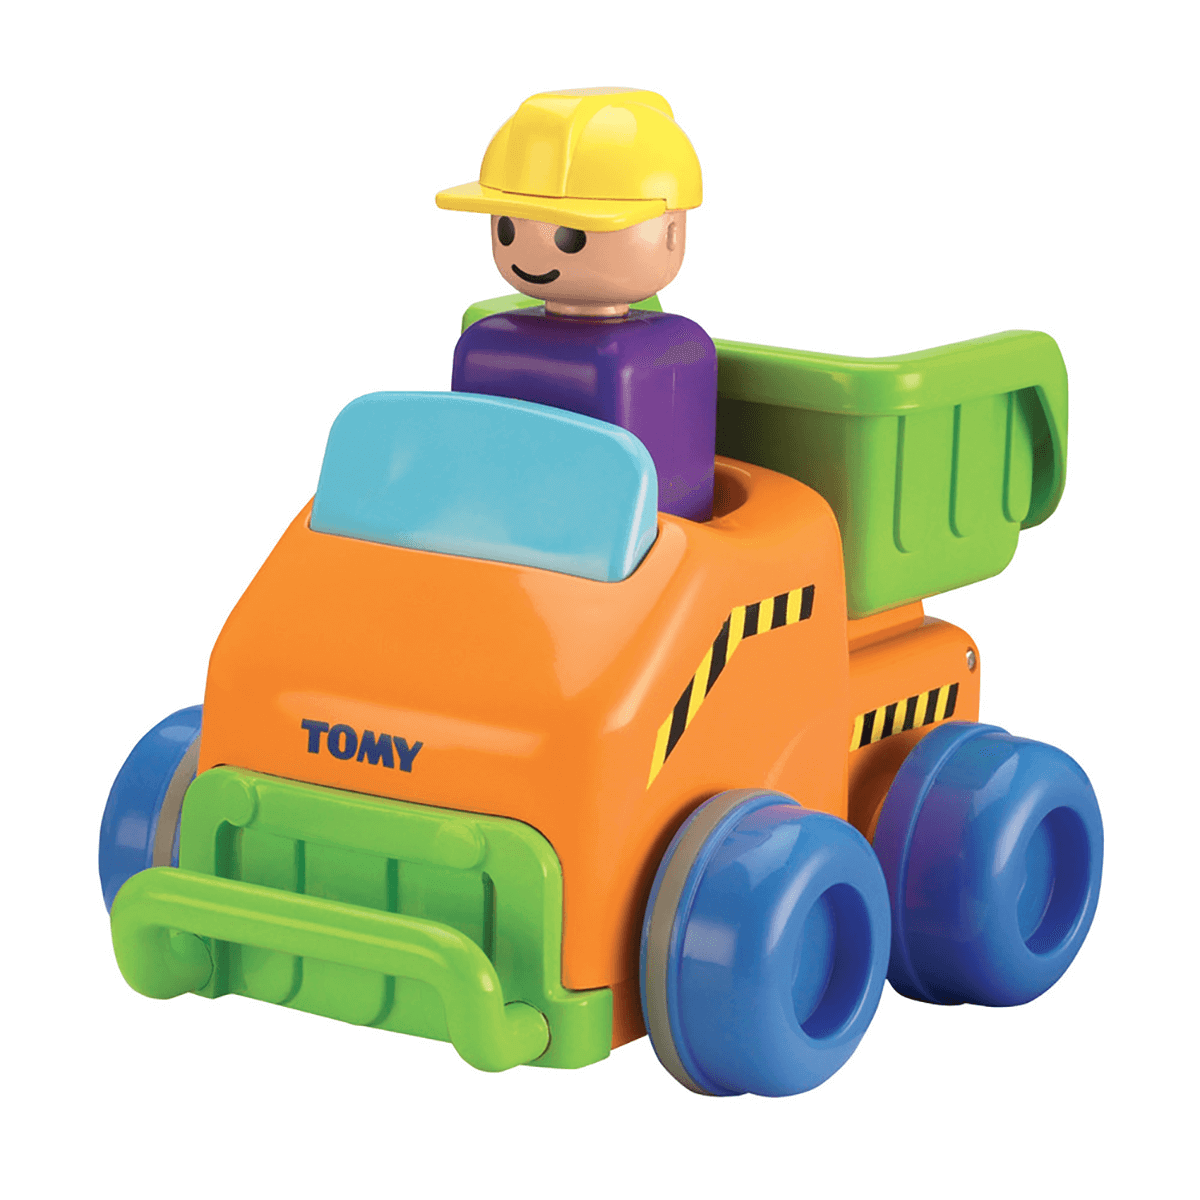 Tomy Toomies Push And Go Vehicle - Dump Track from Early Learning Center